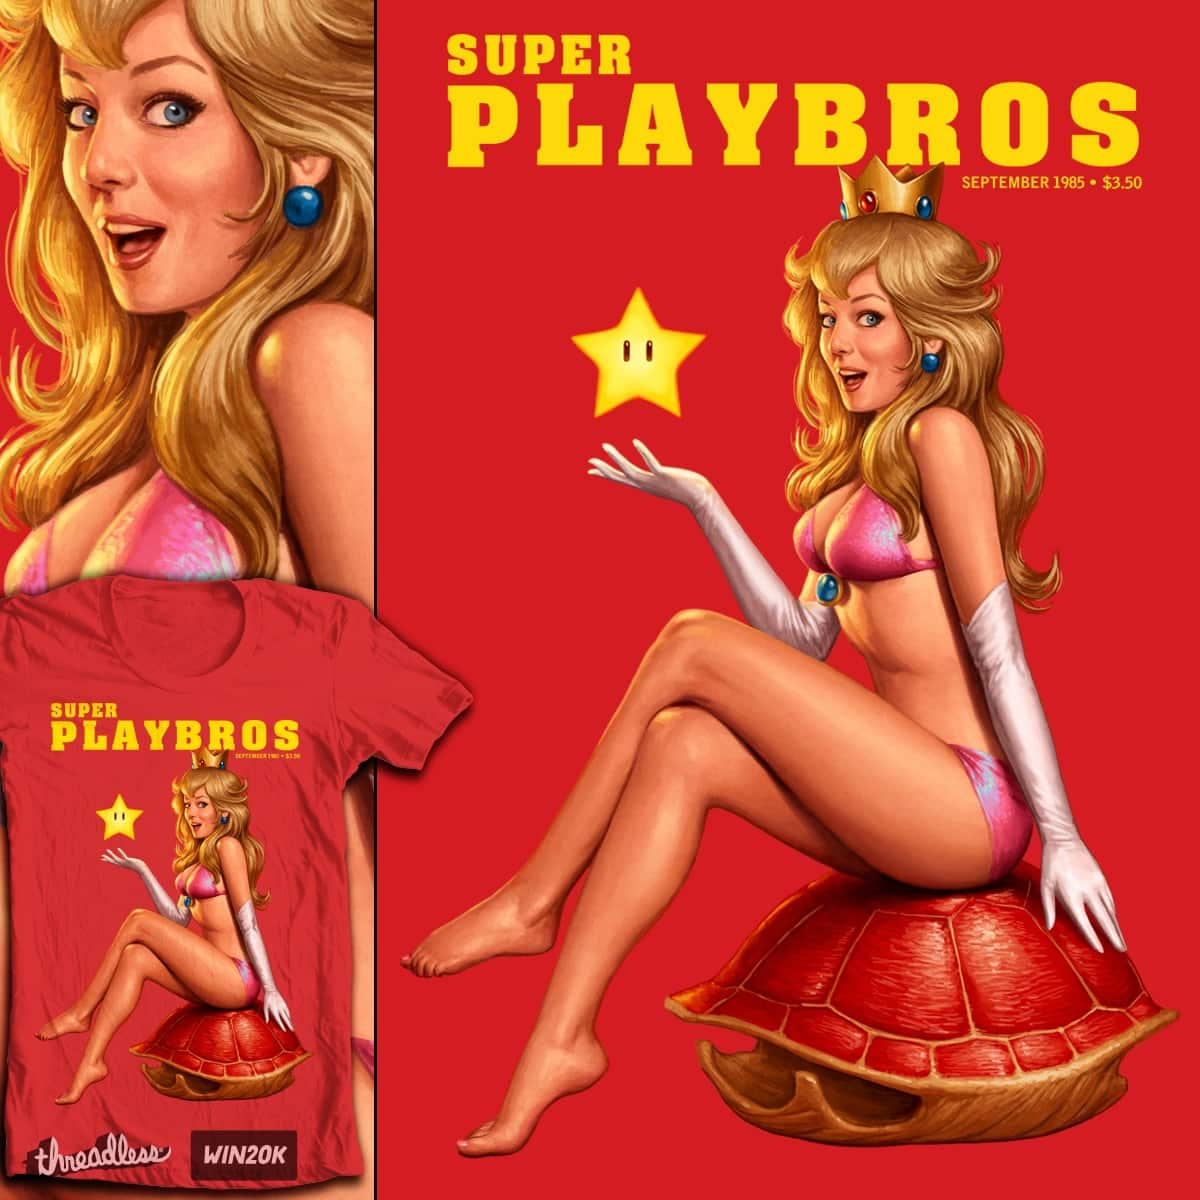 Super Playbros by Moutchy on Threadless